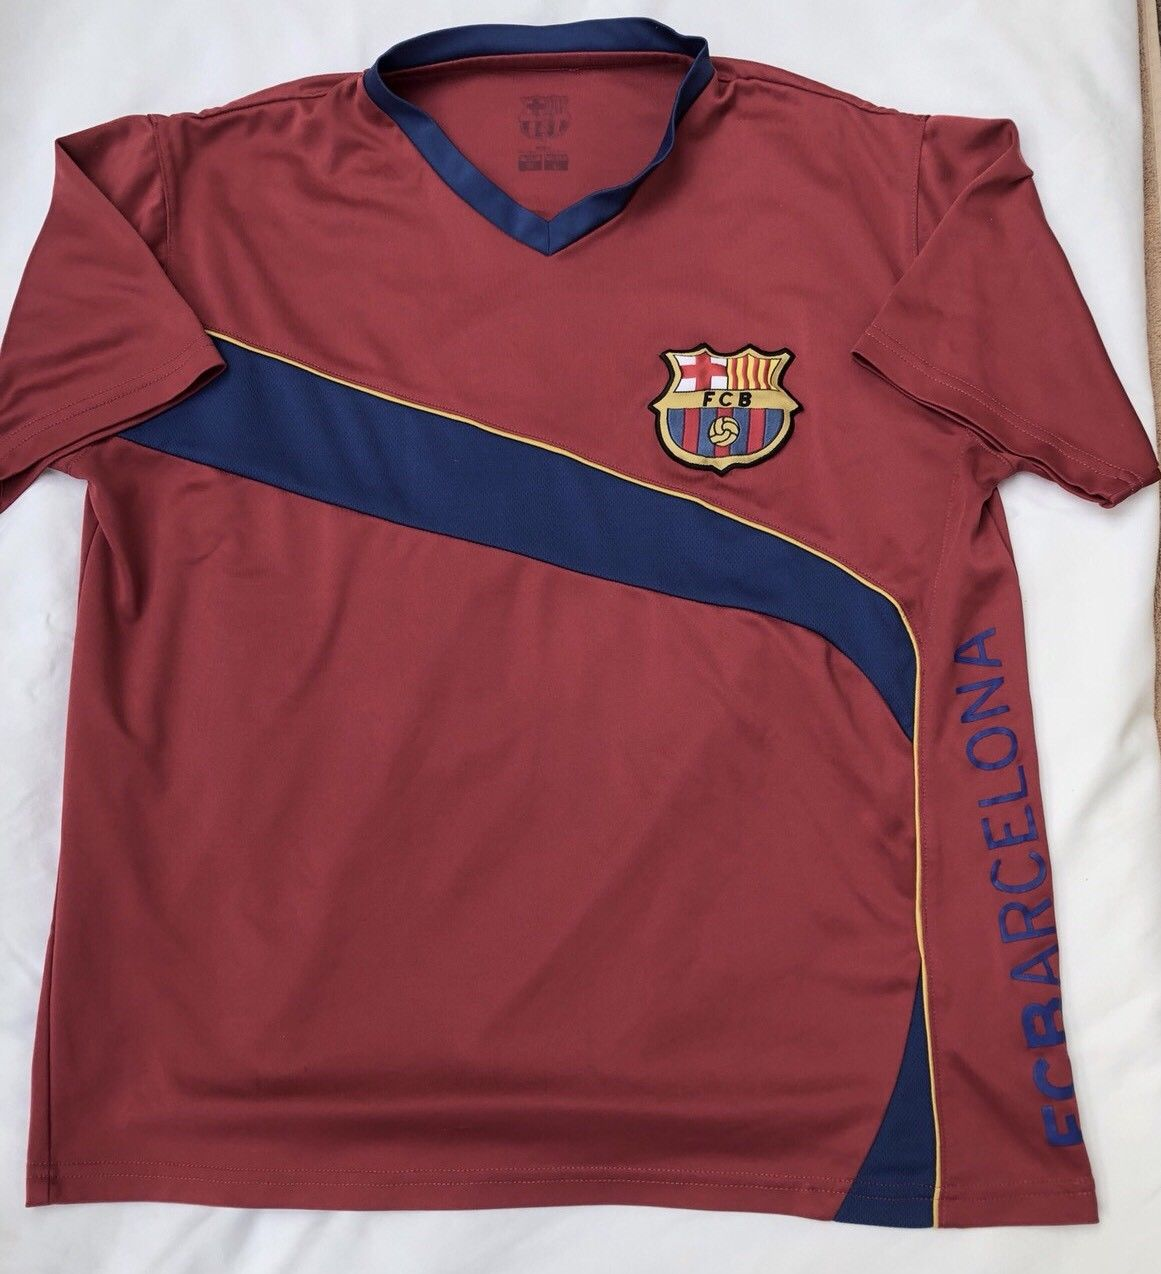 39c9a12f666 Barcelona Training/Leisure Maillot de foot (unknown year).